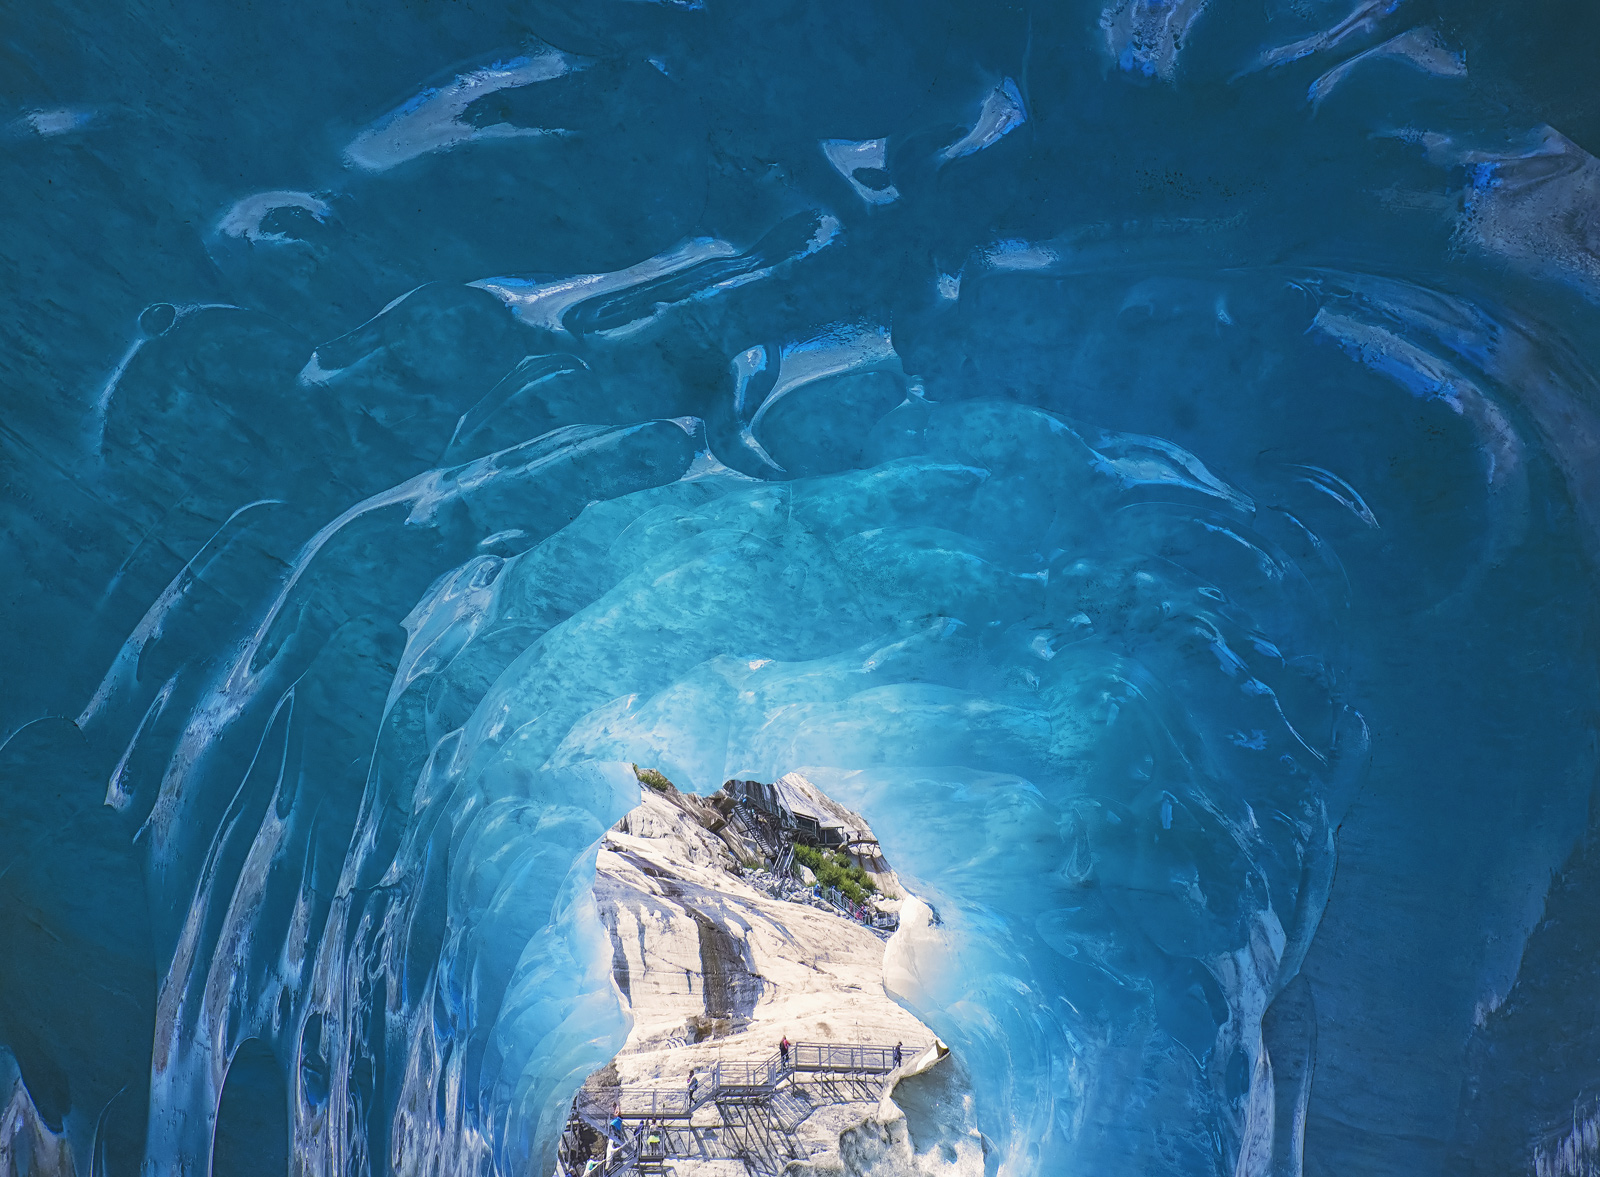 Under Pressure, Mer De Glace, Chamonix, France, ice, caverns, blue, compressed, Mont Blanc Massif, glacial, tunnel, tour, photo